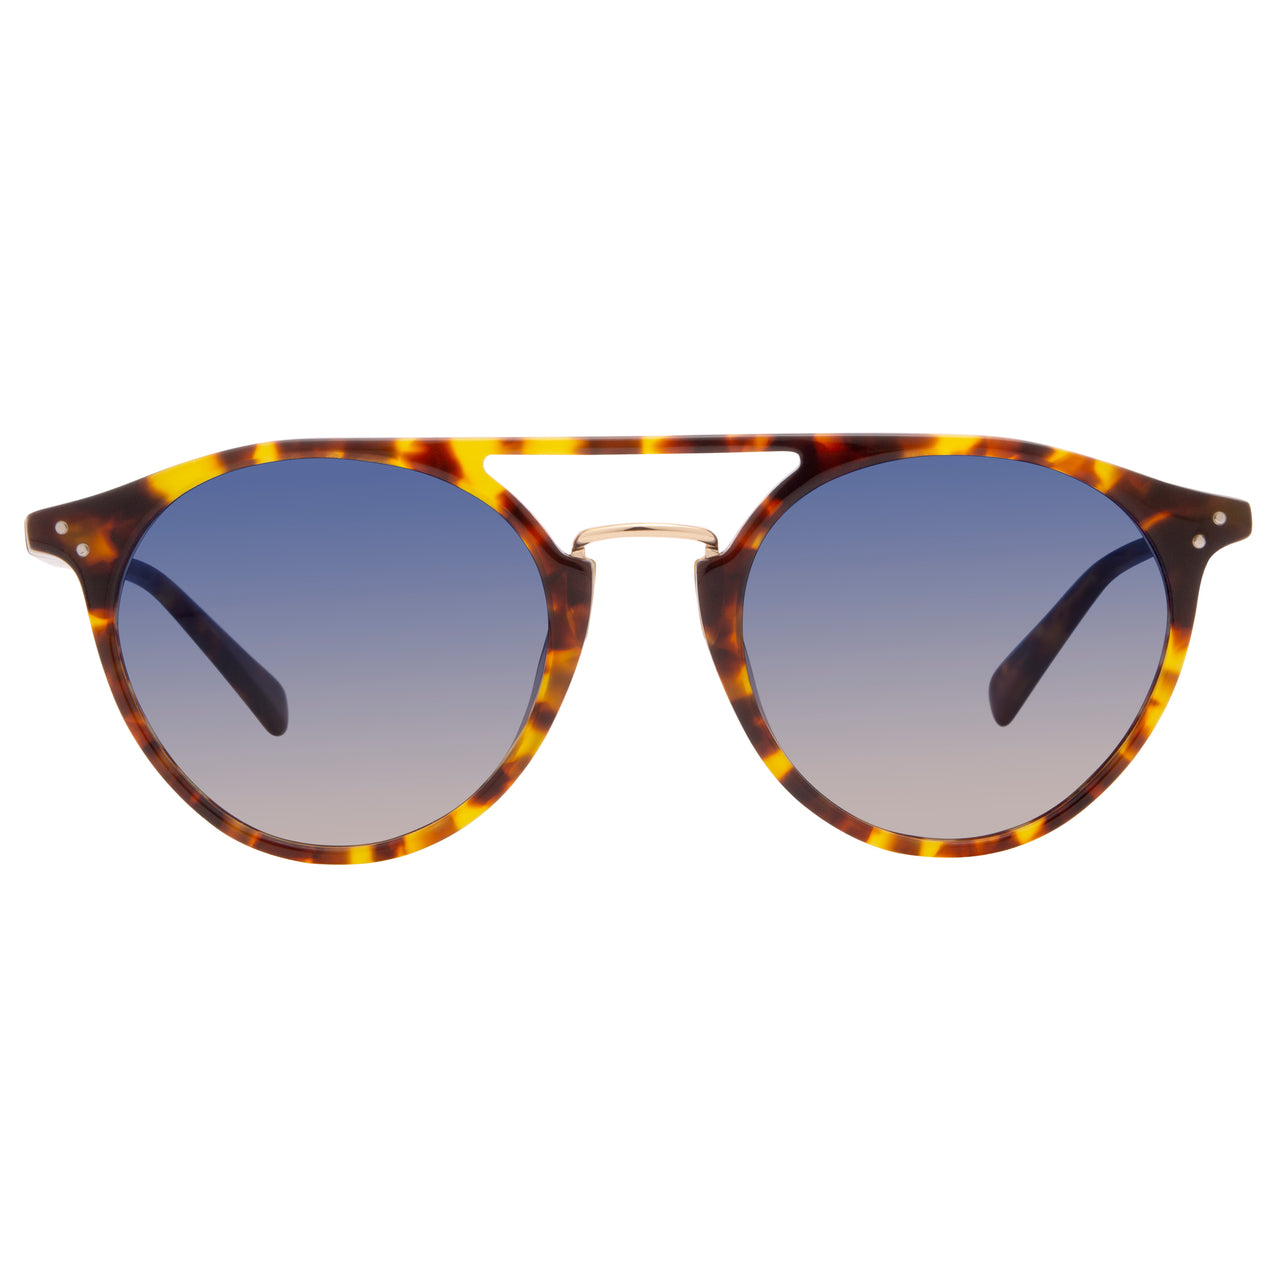 MASON - AMBER TORTOISE + BLUE STEEL GRADIENT + POLARIZED